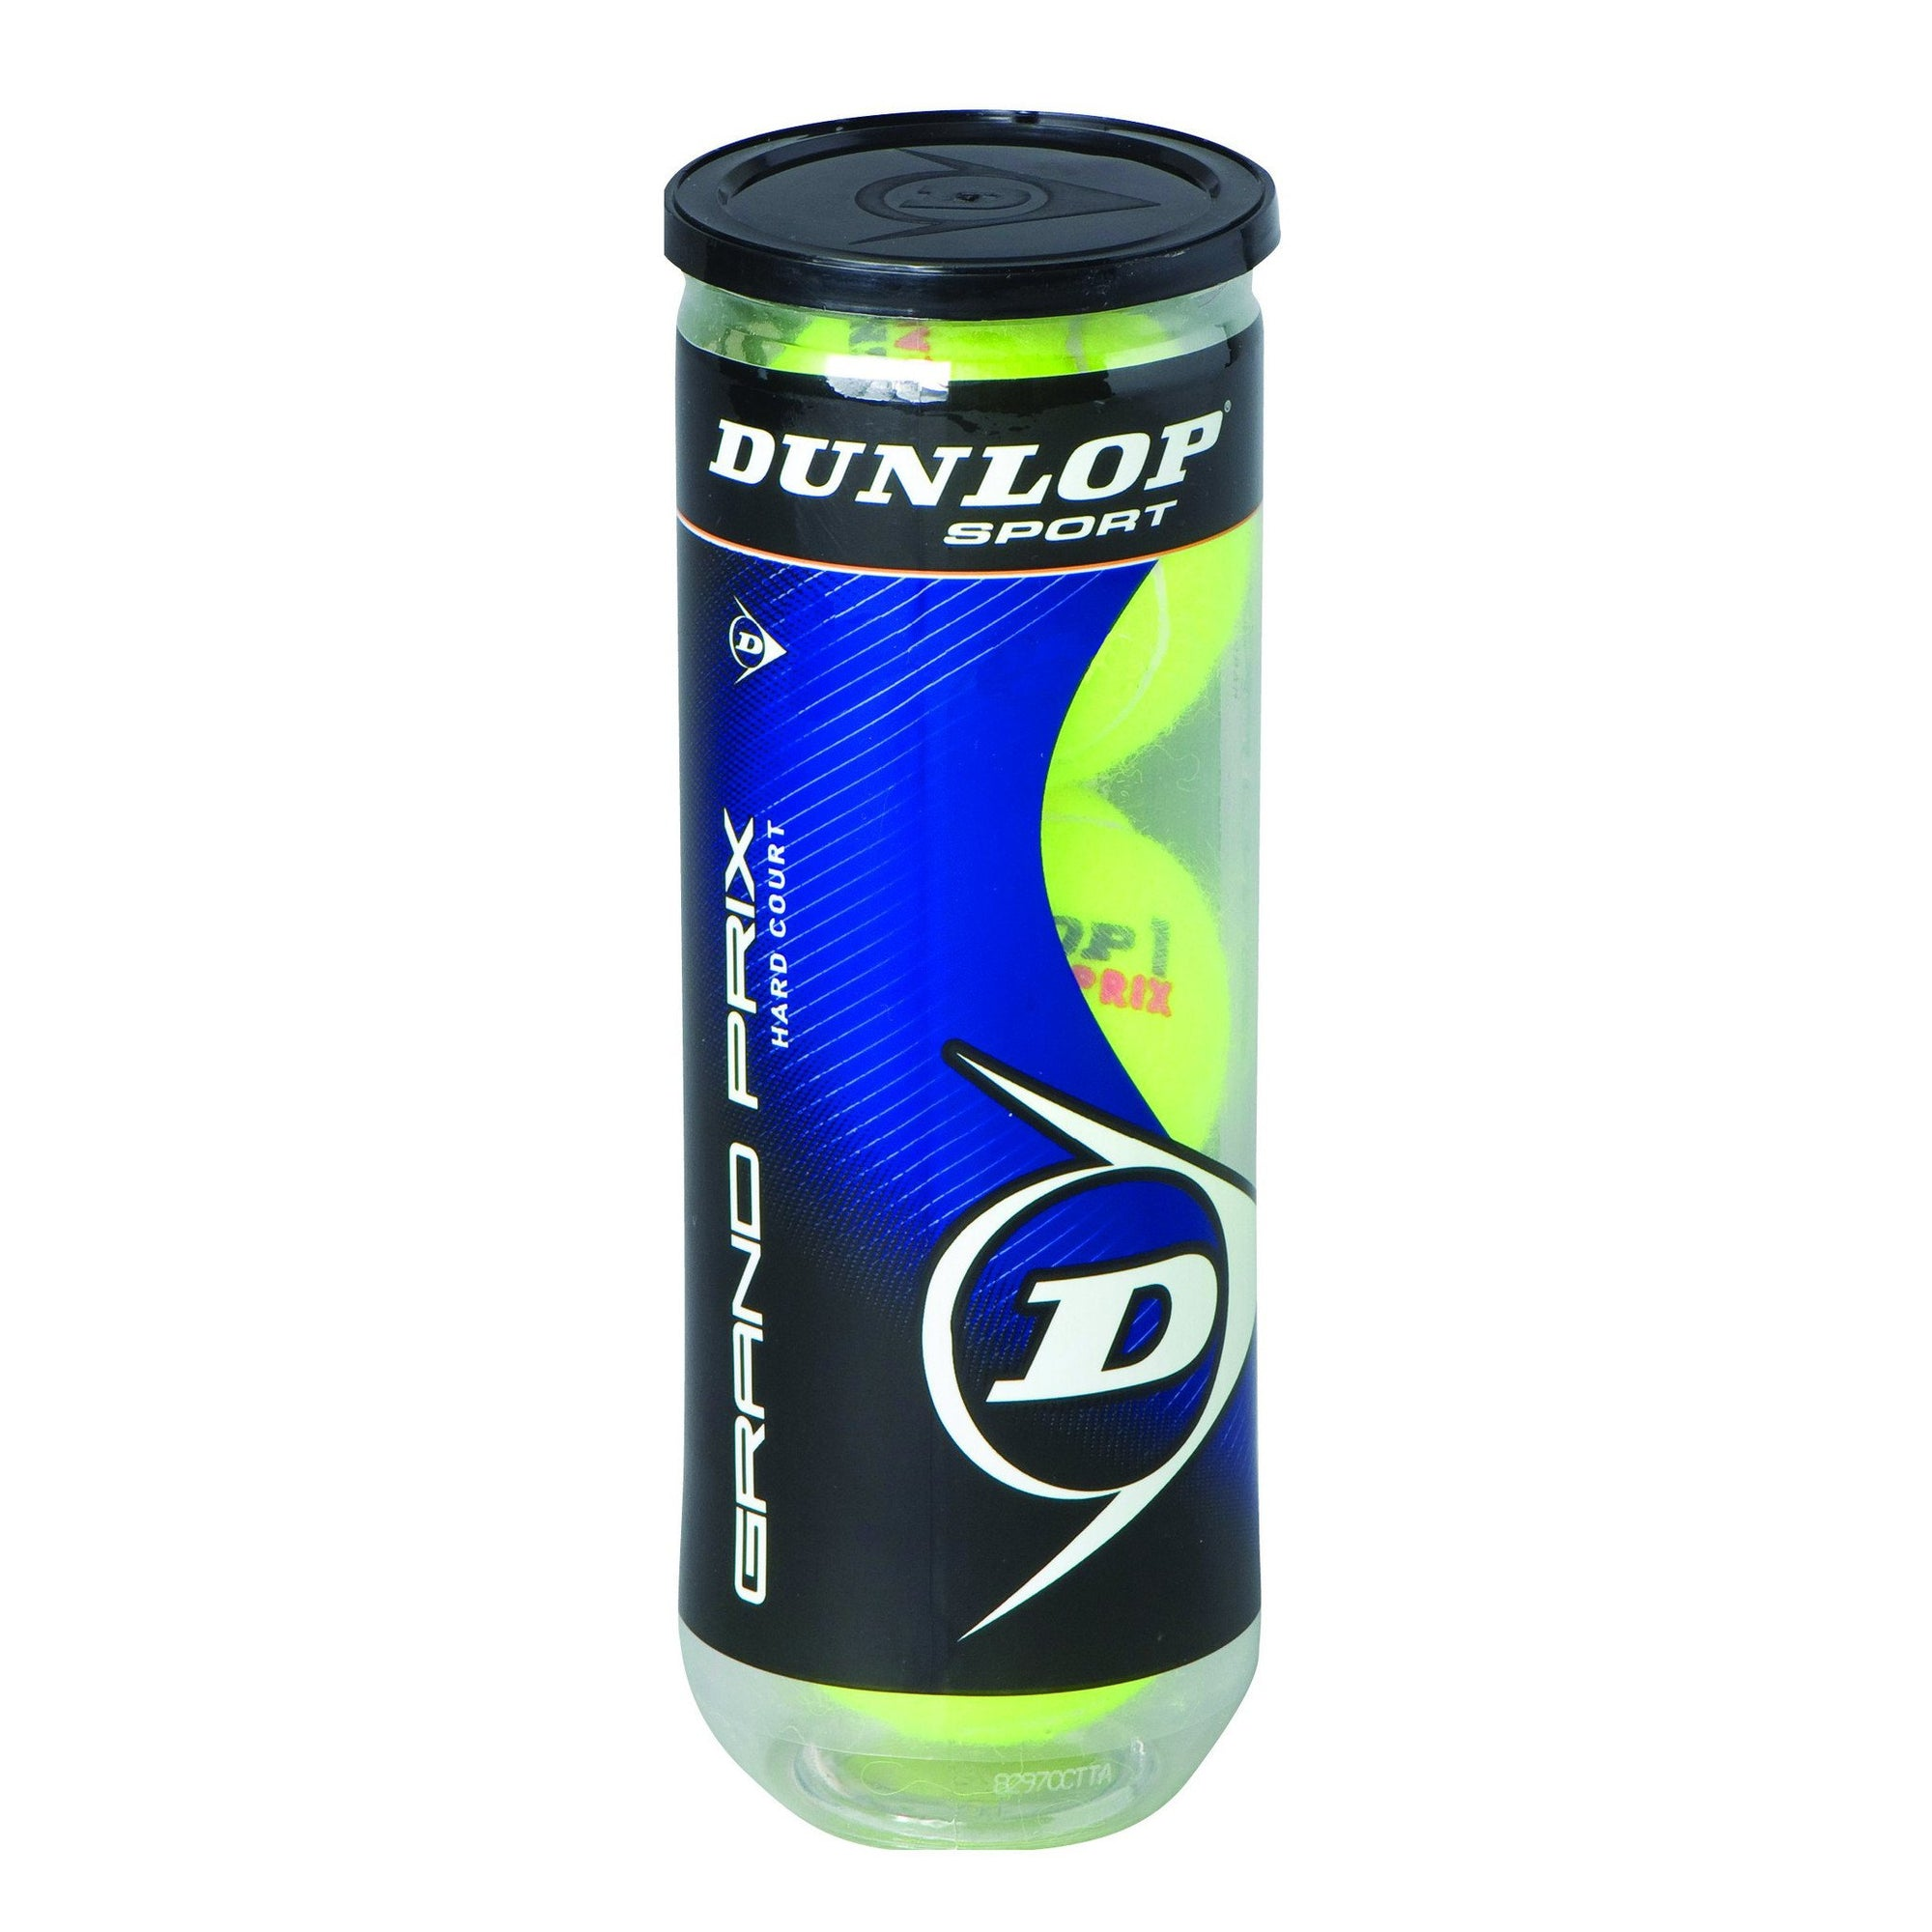 Dunlop - Grand Prix Hard Court Balls-Tennis Accessories-Kunstadt Sports